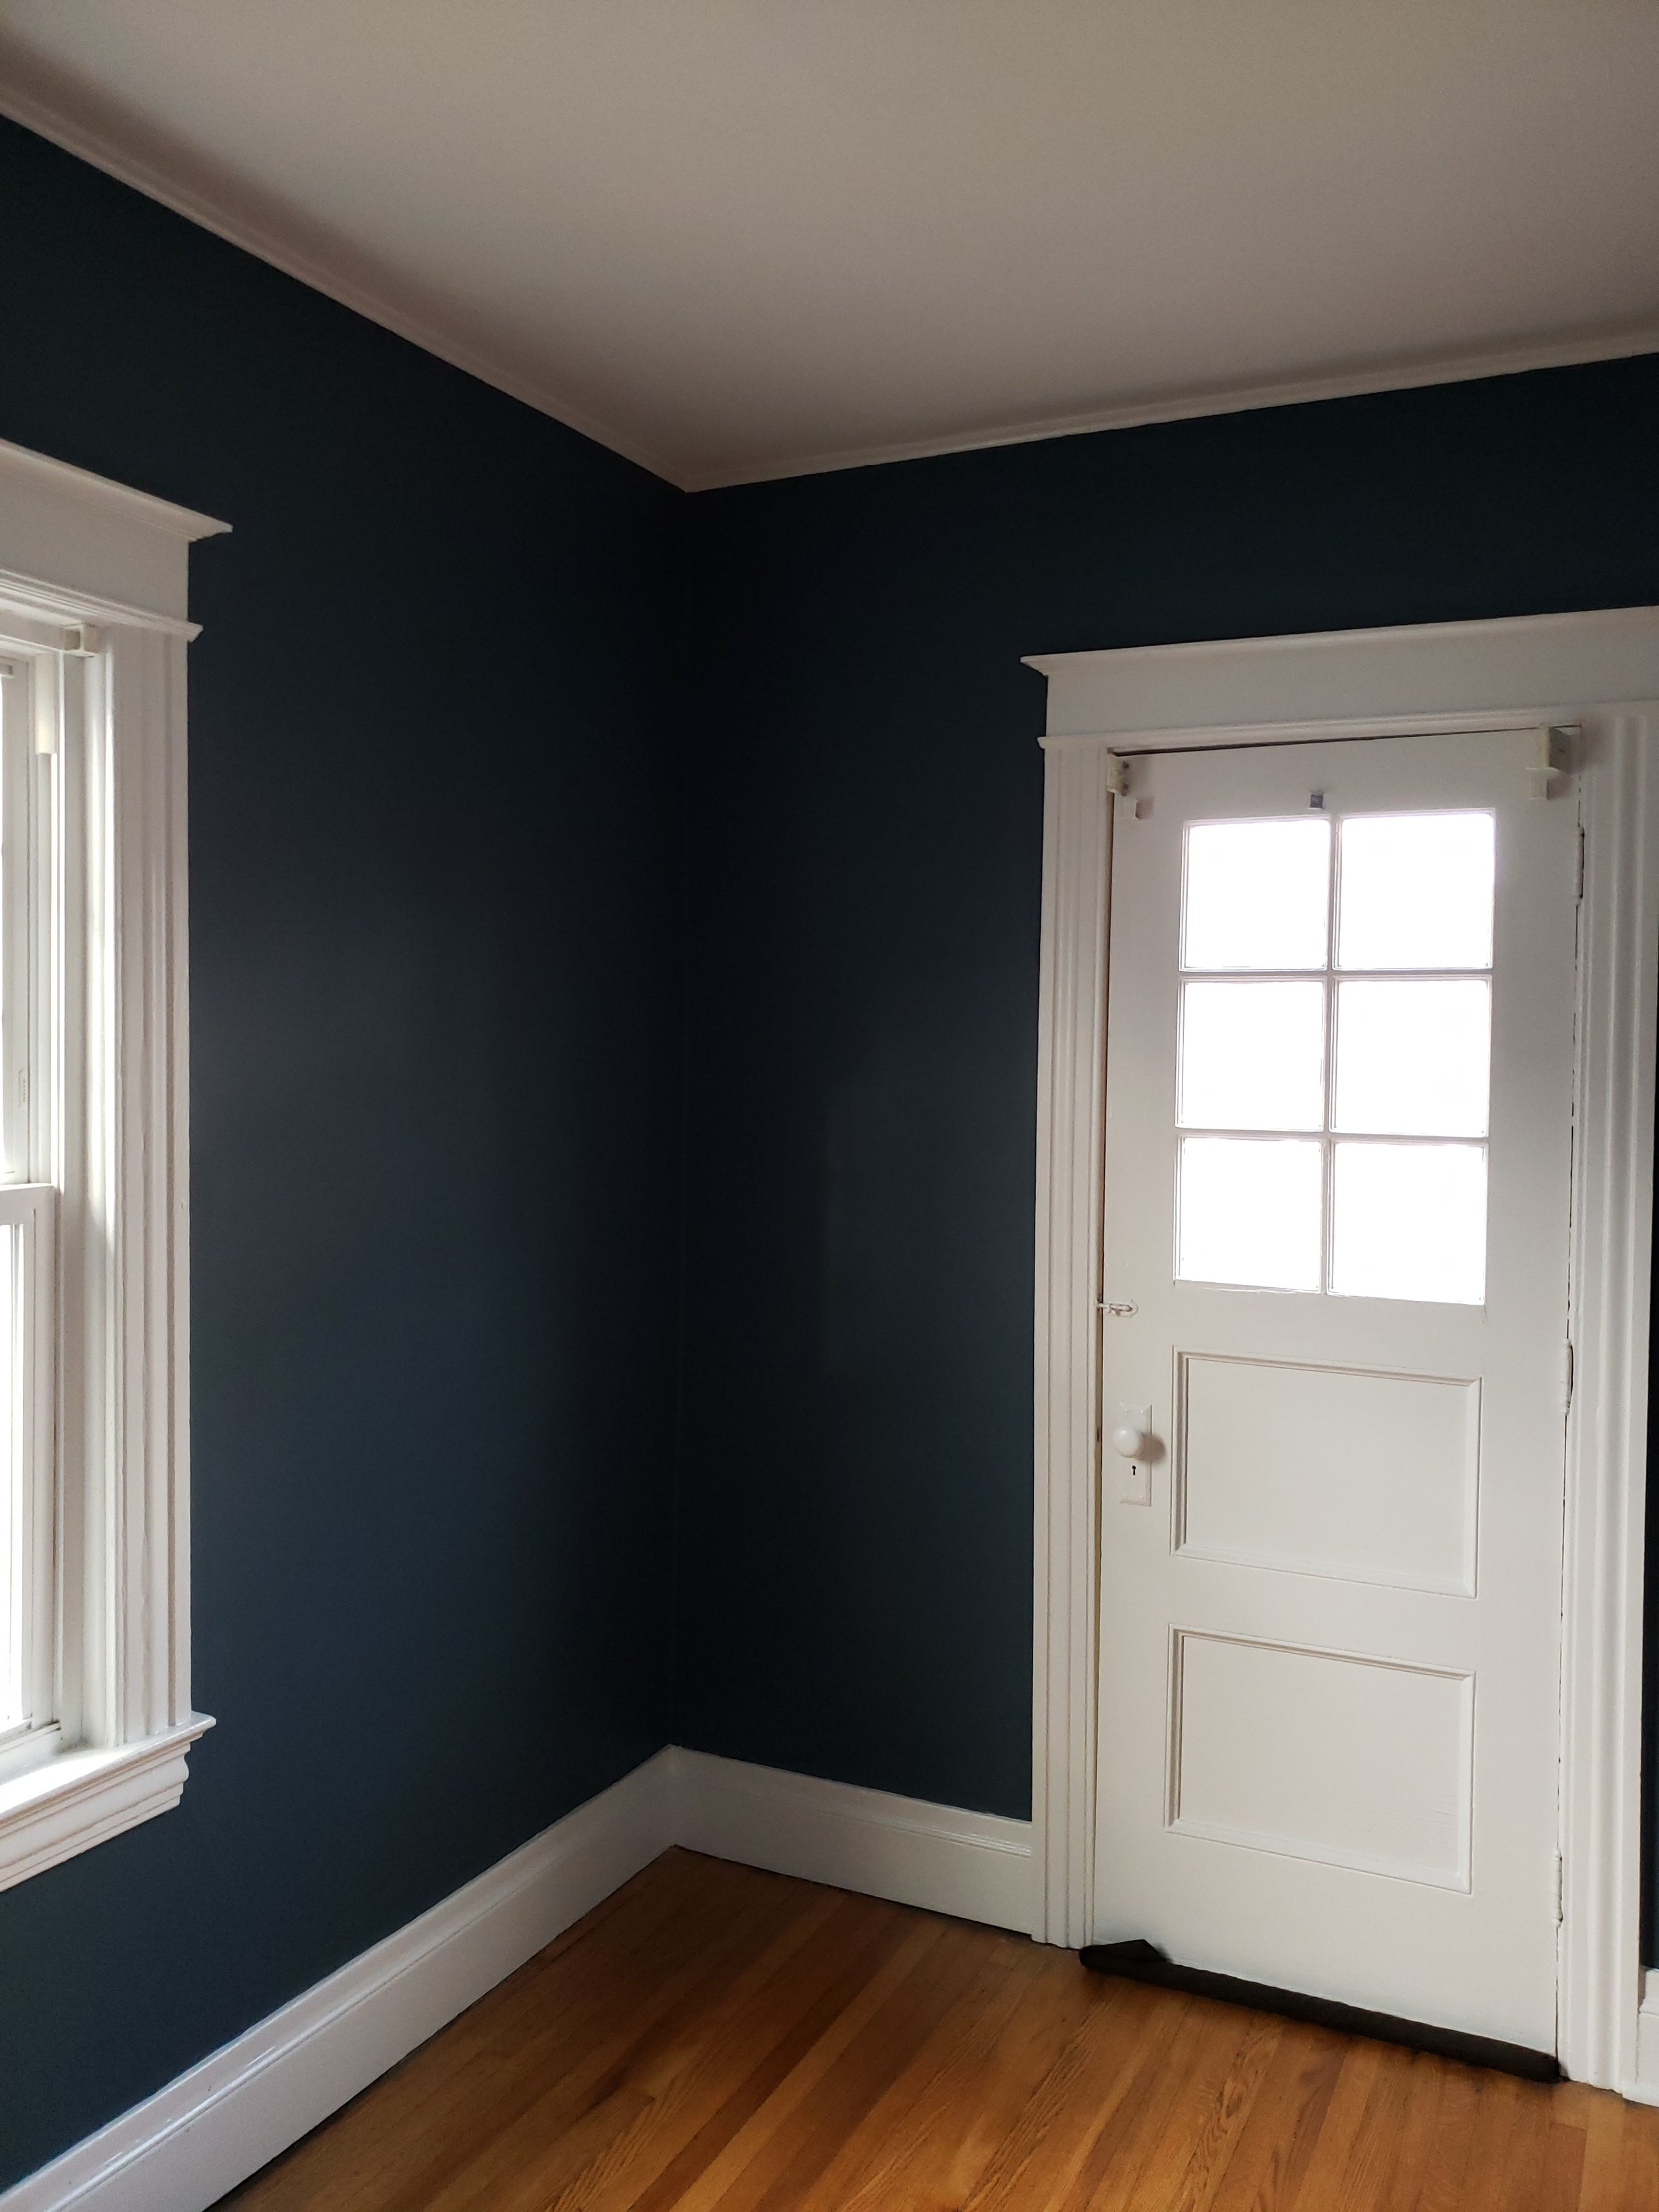 """""""LOVE IT. Thank you! Everything looks great. I was really nervous about  that color we chose for the nursery but I really like it and feel like  it suits us. Thanks again for your very CLEAN work.""""    -Nicole T."""